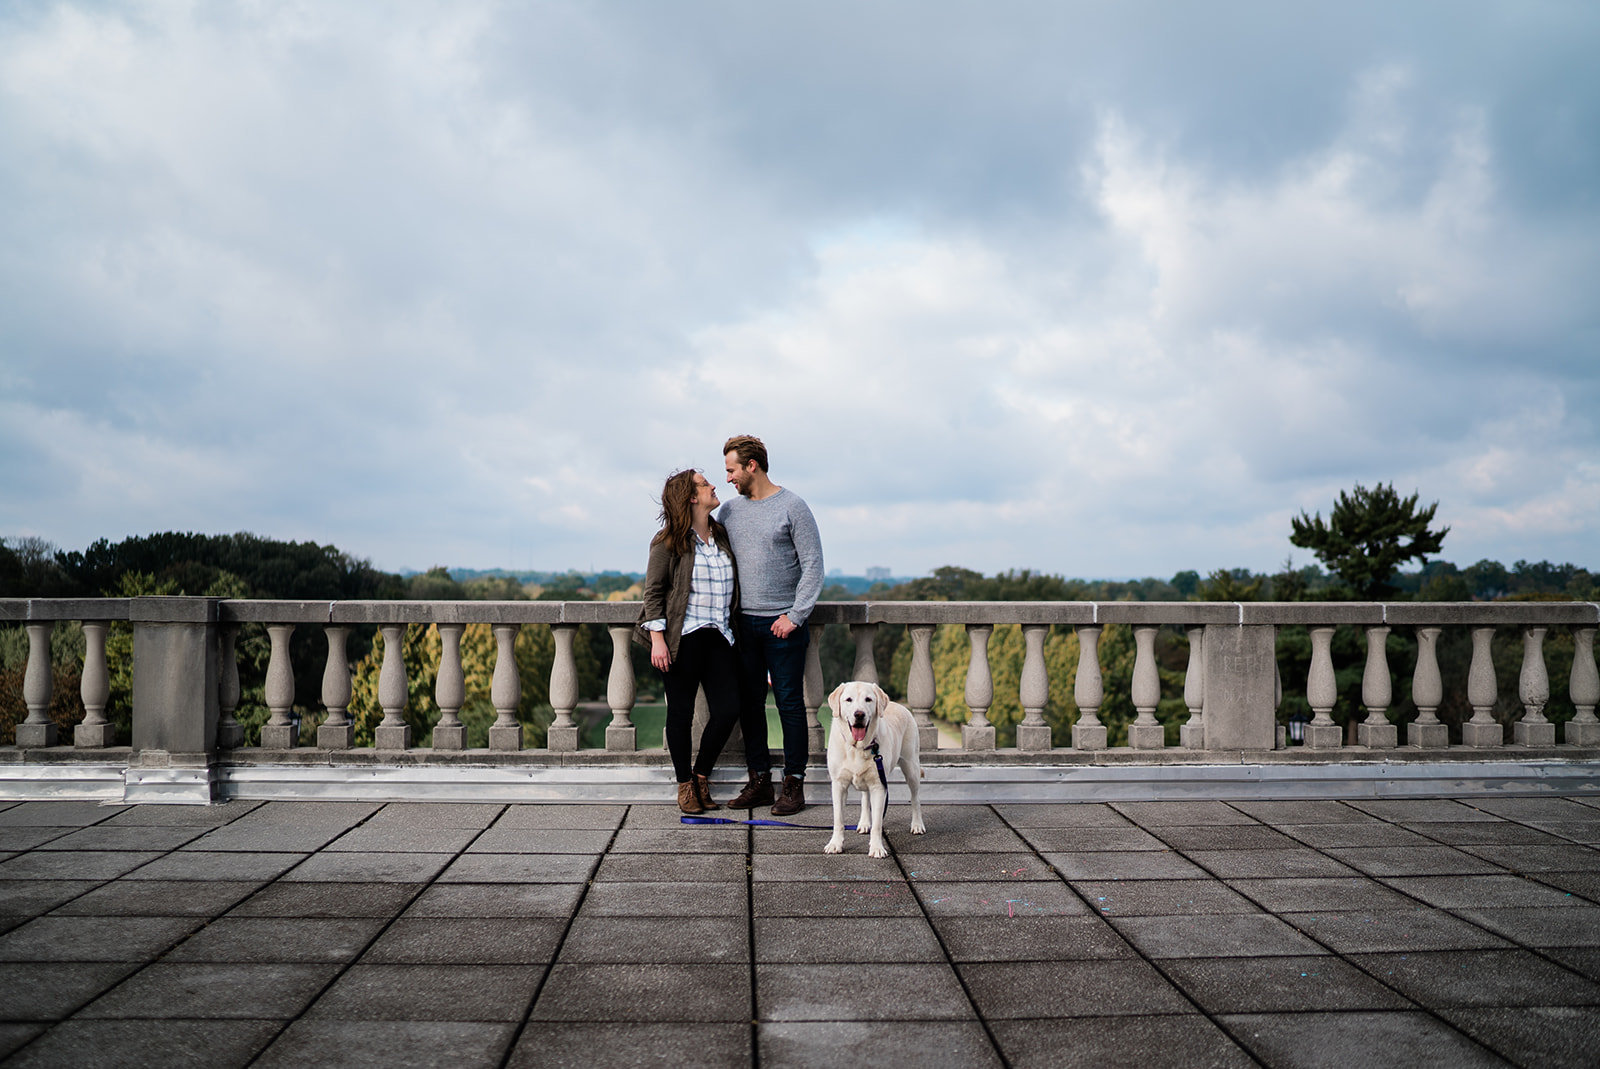 Weiss_Engagement-14